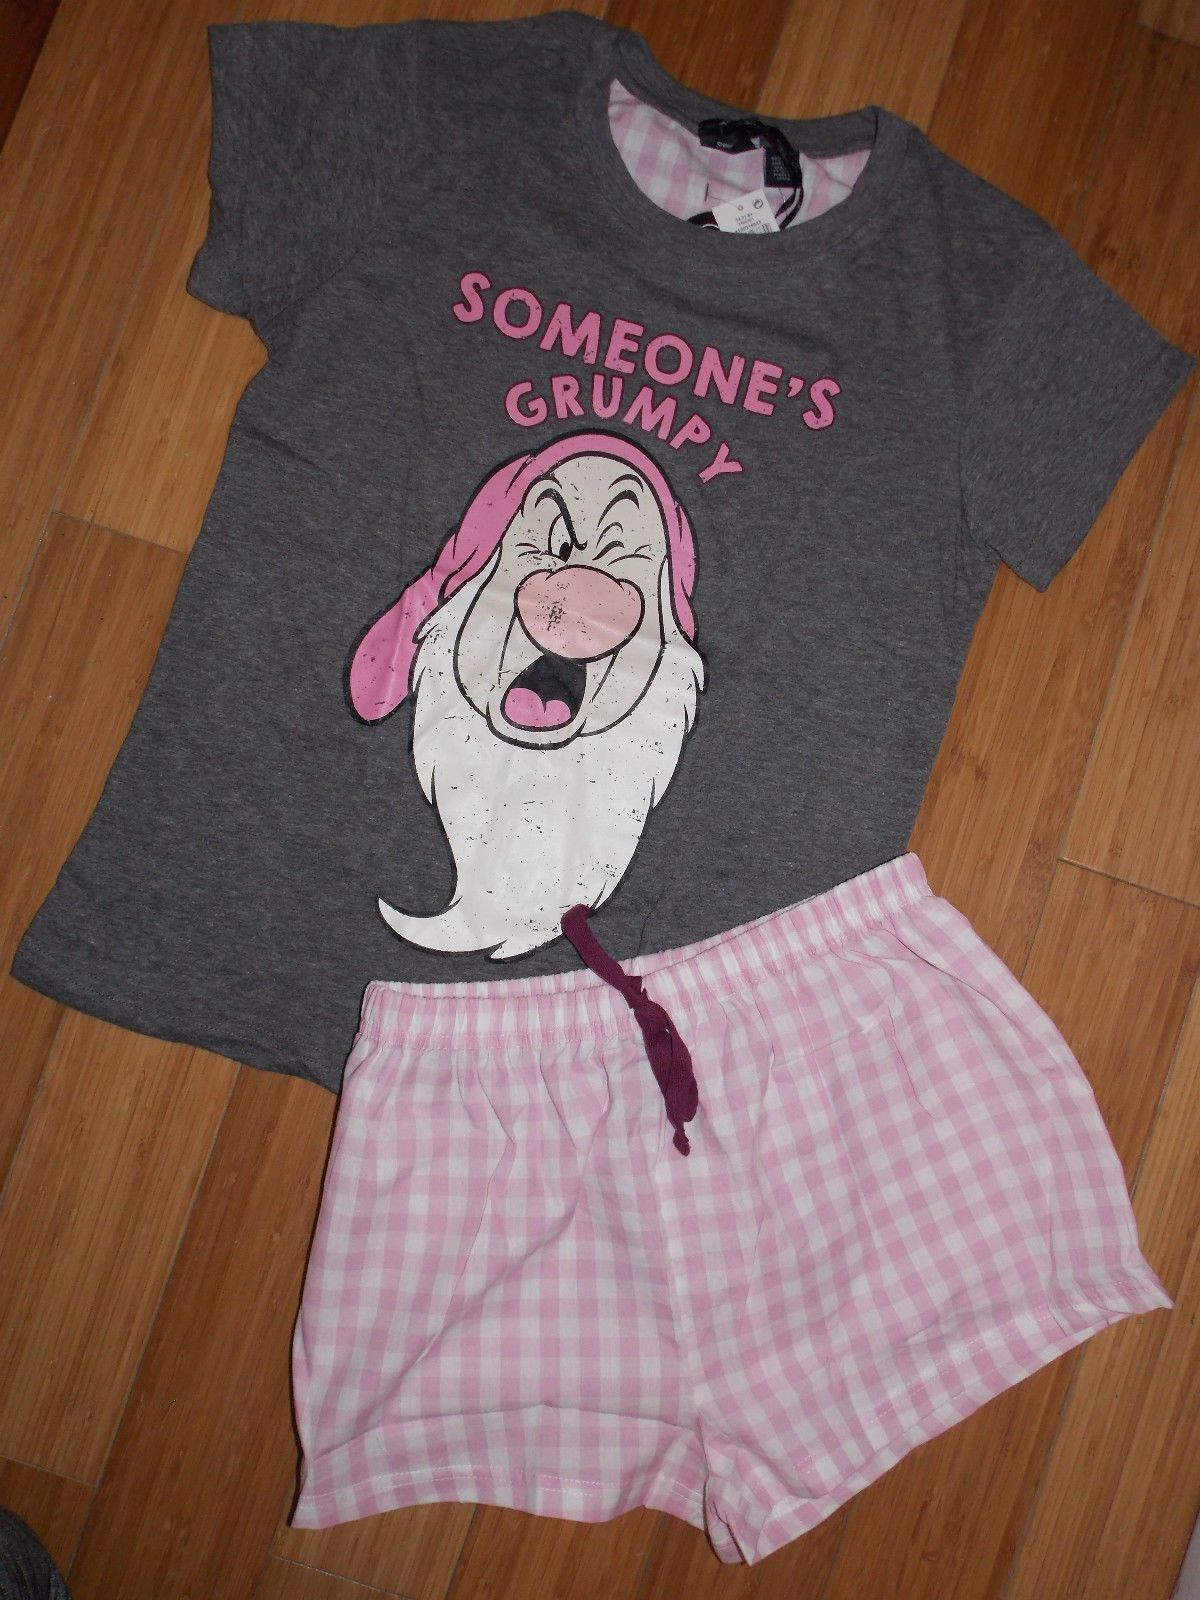 193b365689 Primark Ladies DISNEY GRUMPY DWARF Pyjamas T Shirt Shorts ...